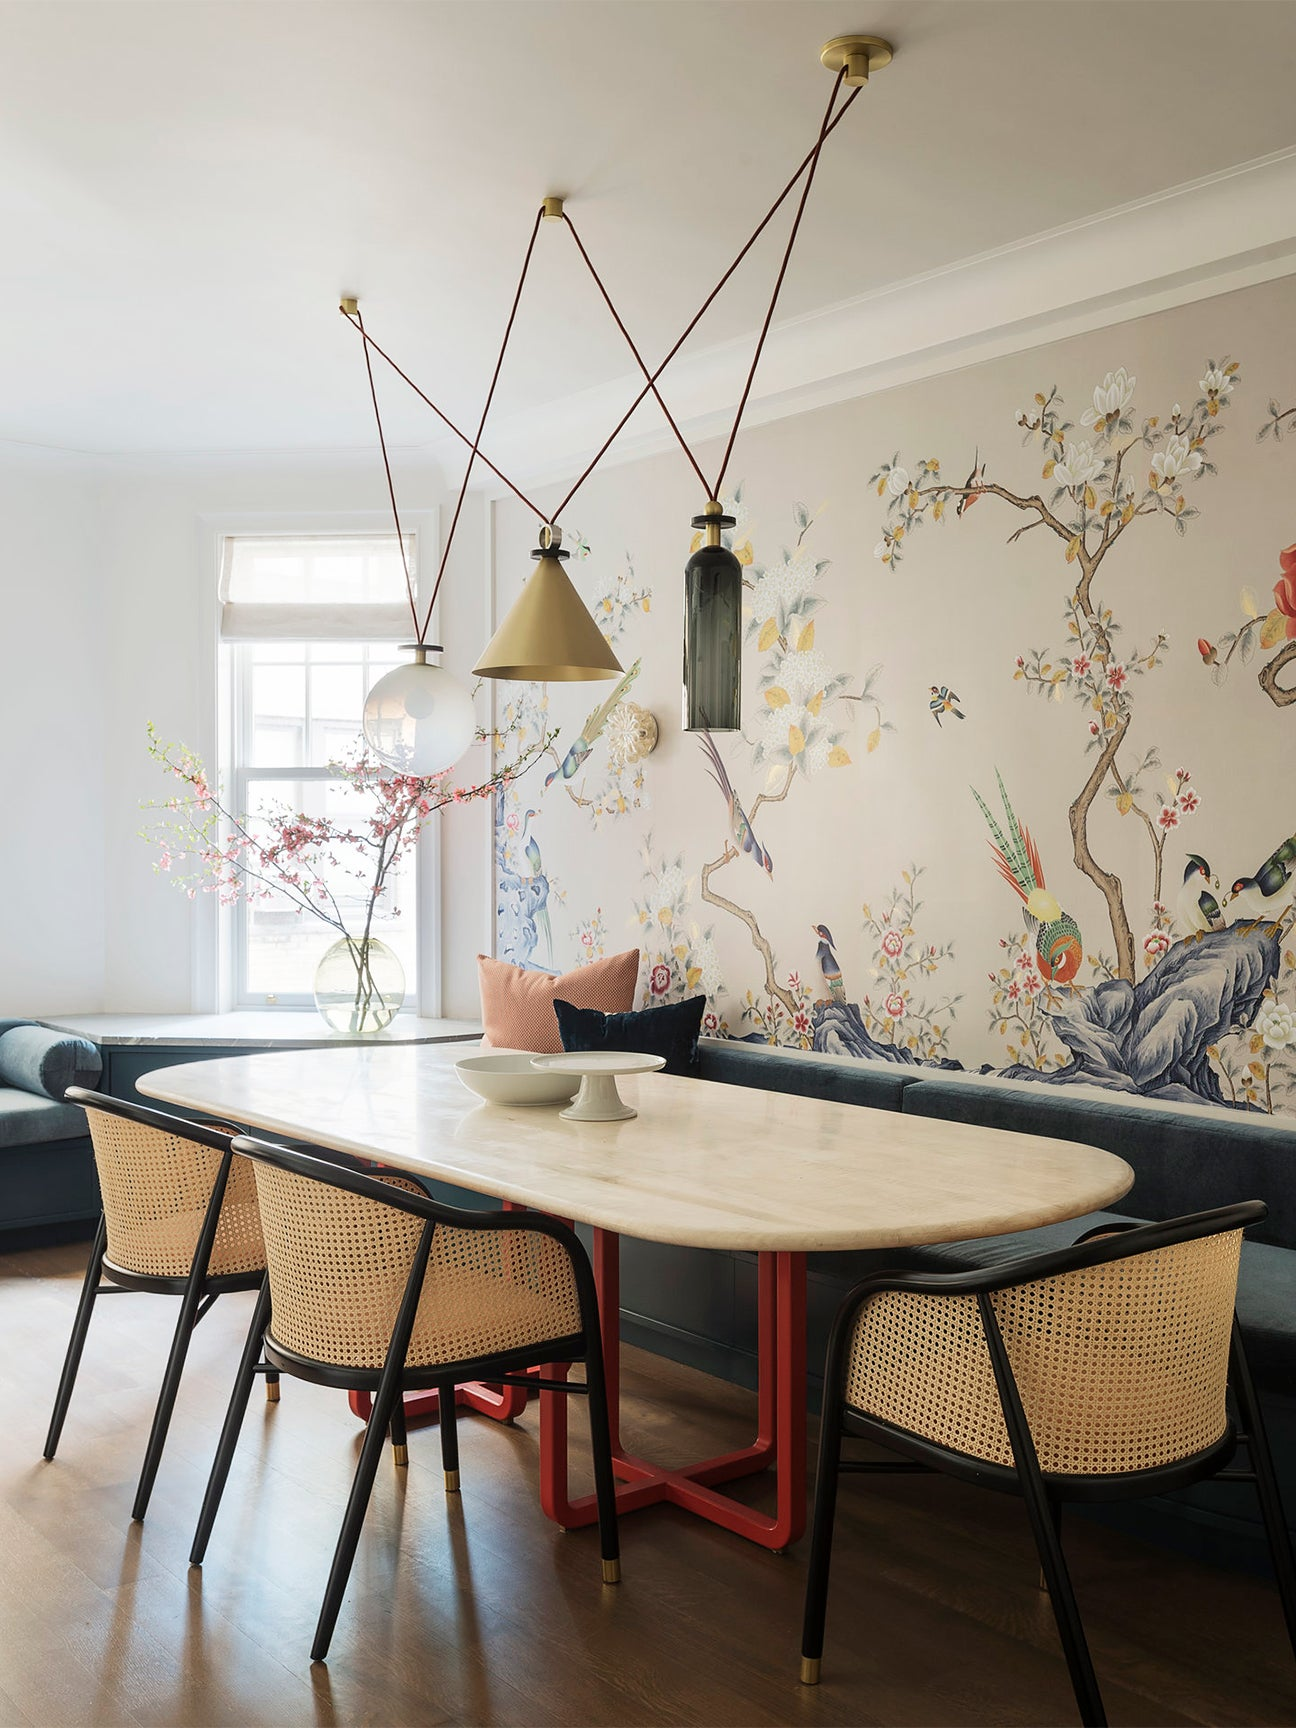 Dining room with floral wallpaper by Studio DB